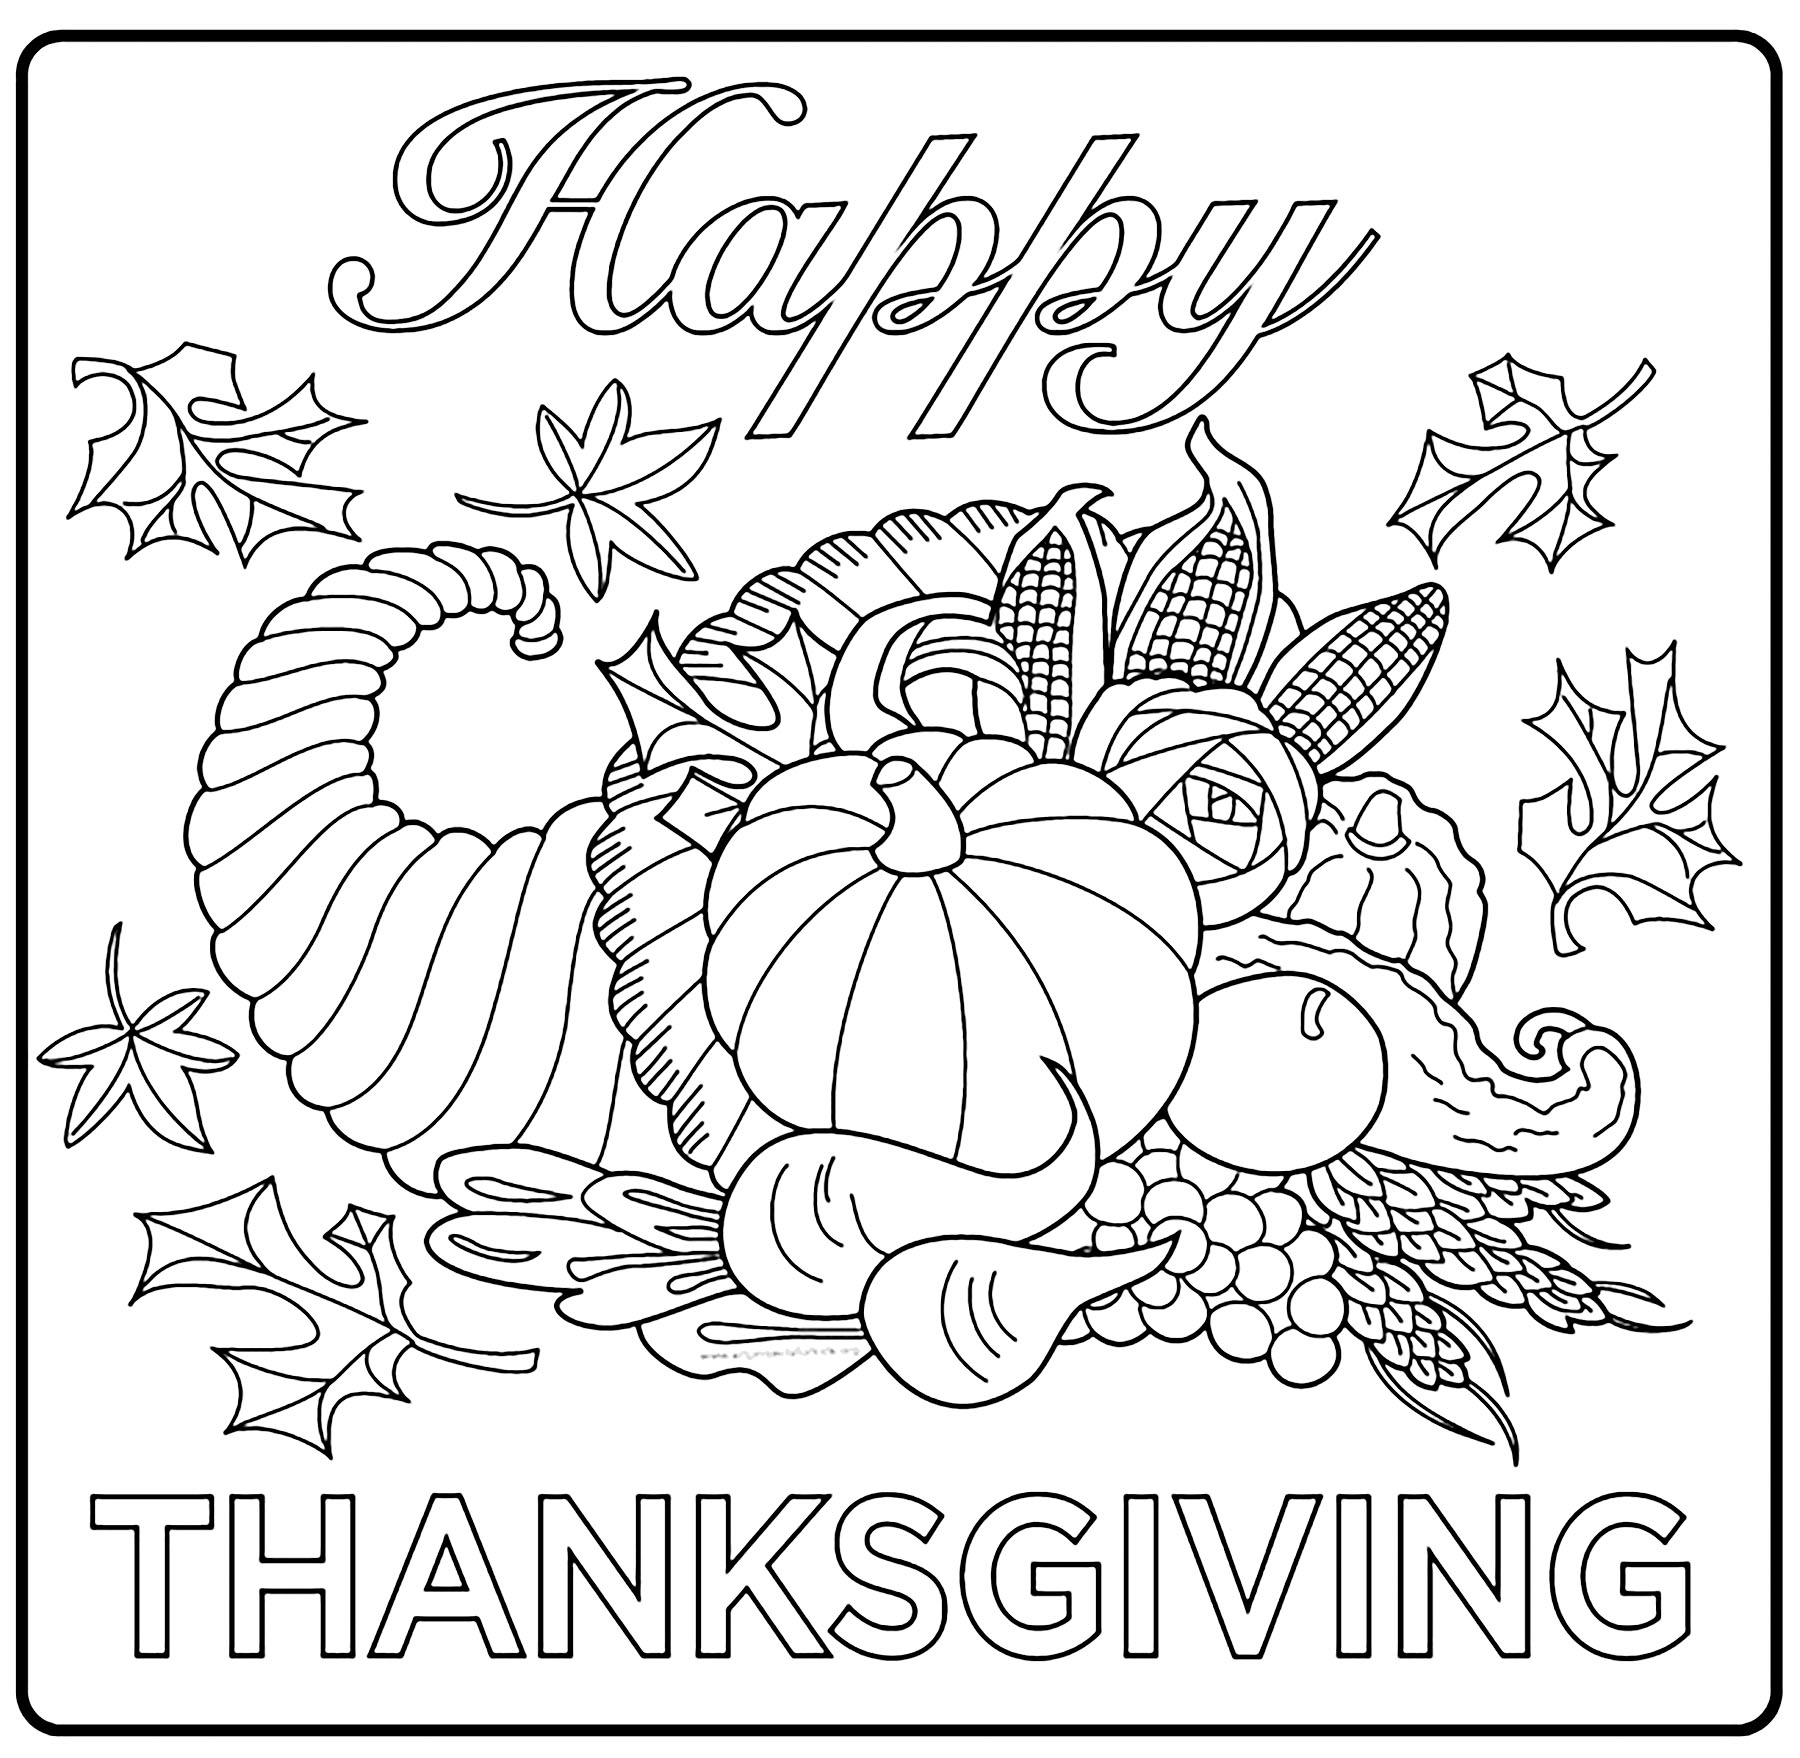 Thanksgiving Coloring Pages For Boys Thanksgiving Free To Color For Children Thanksgiving Kids Coloring